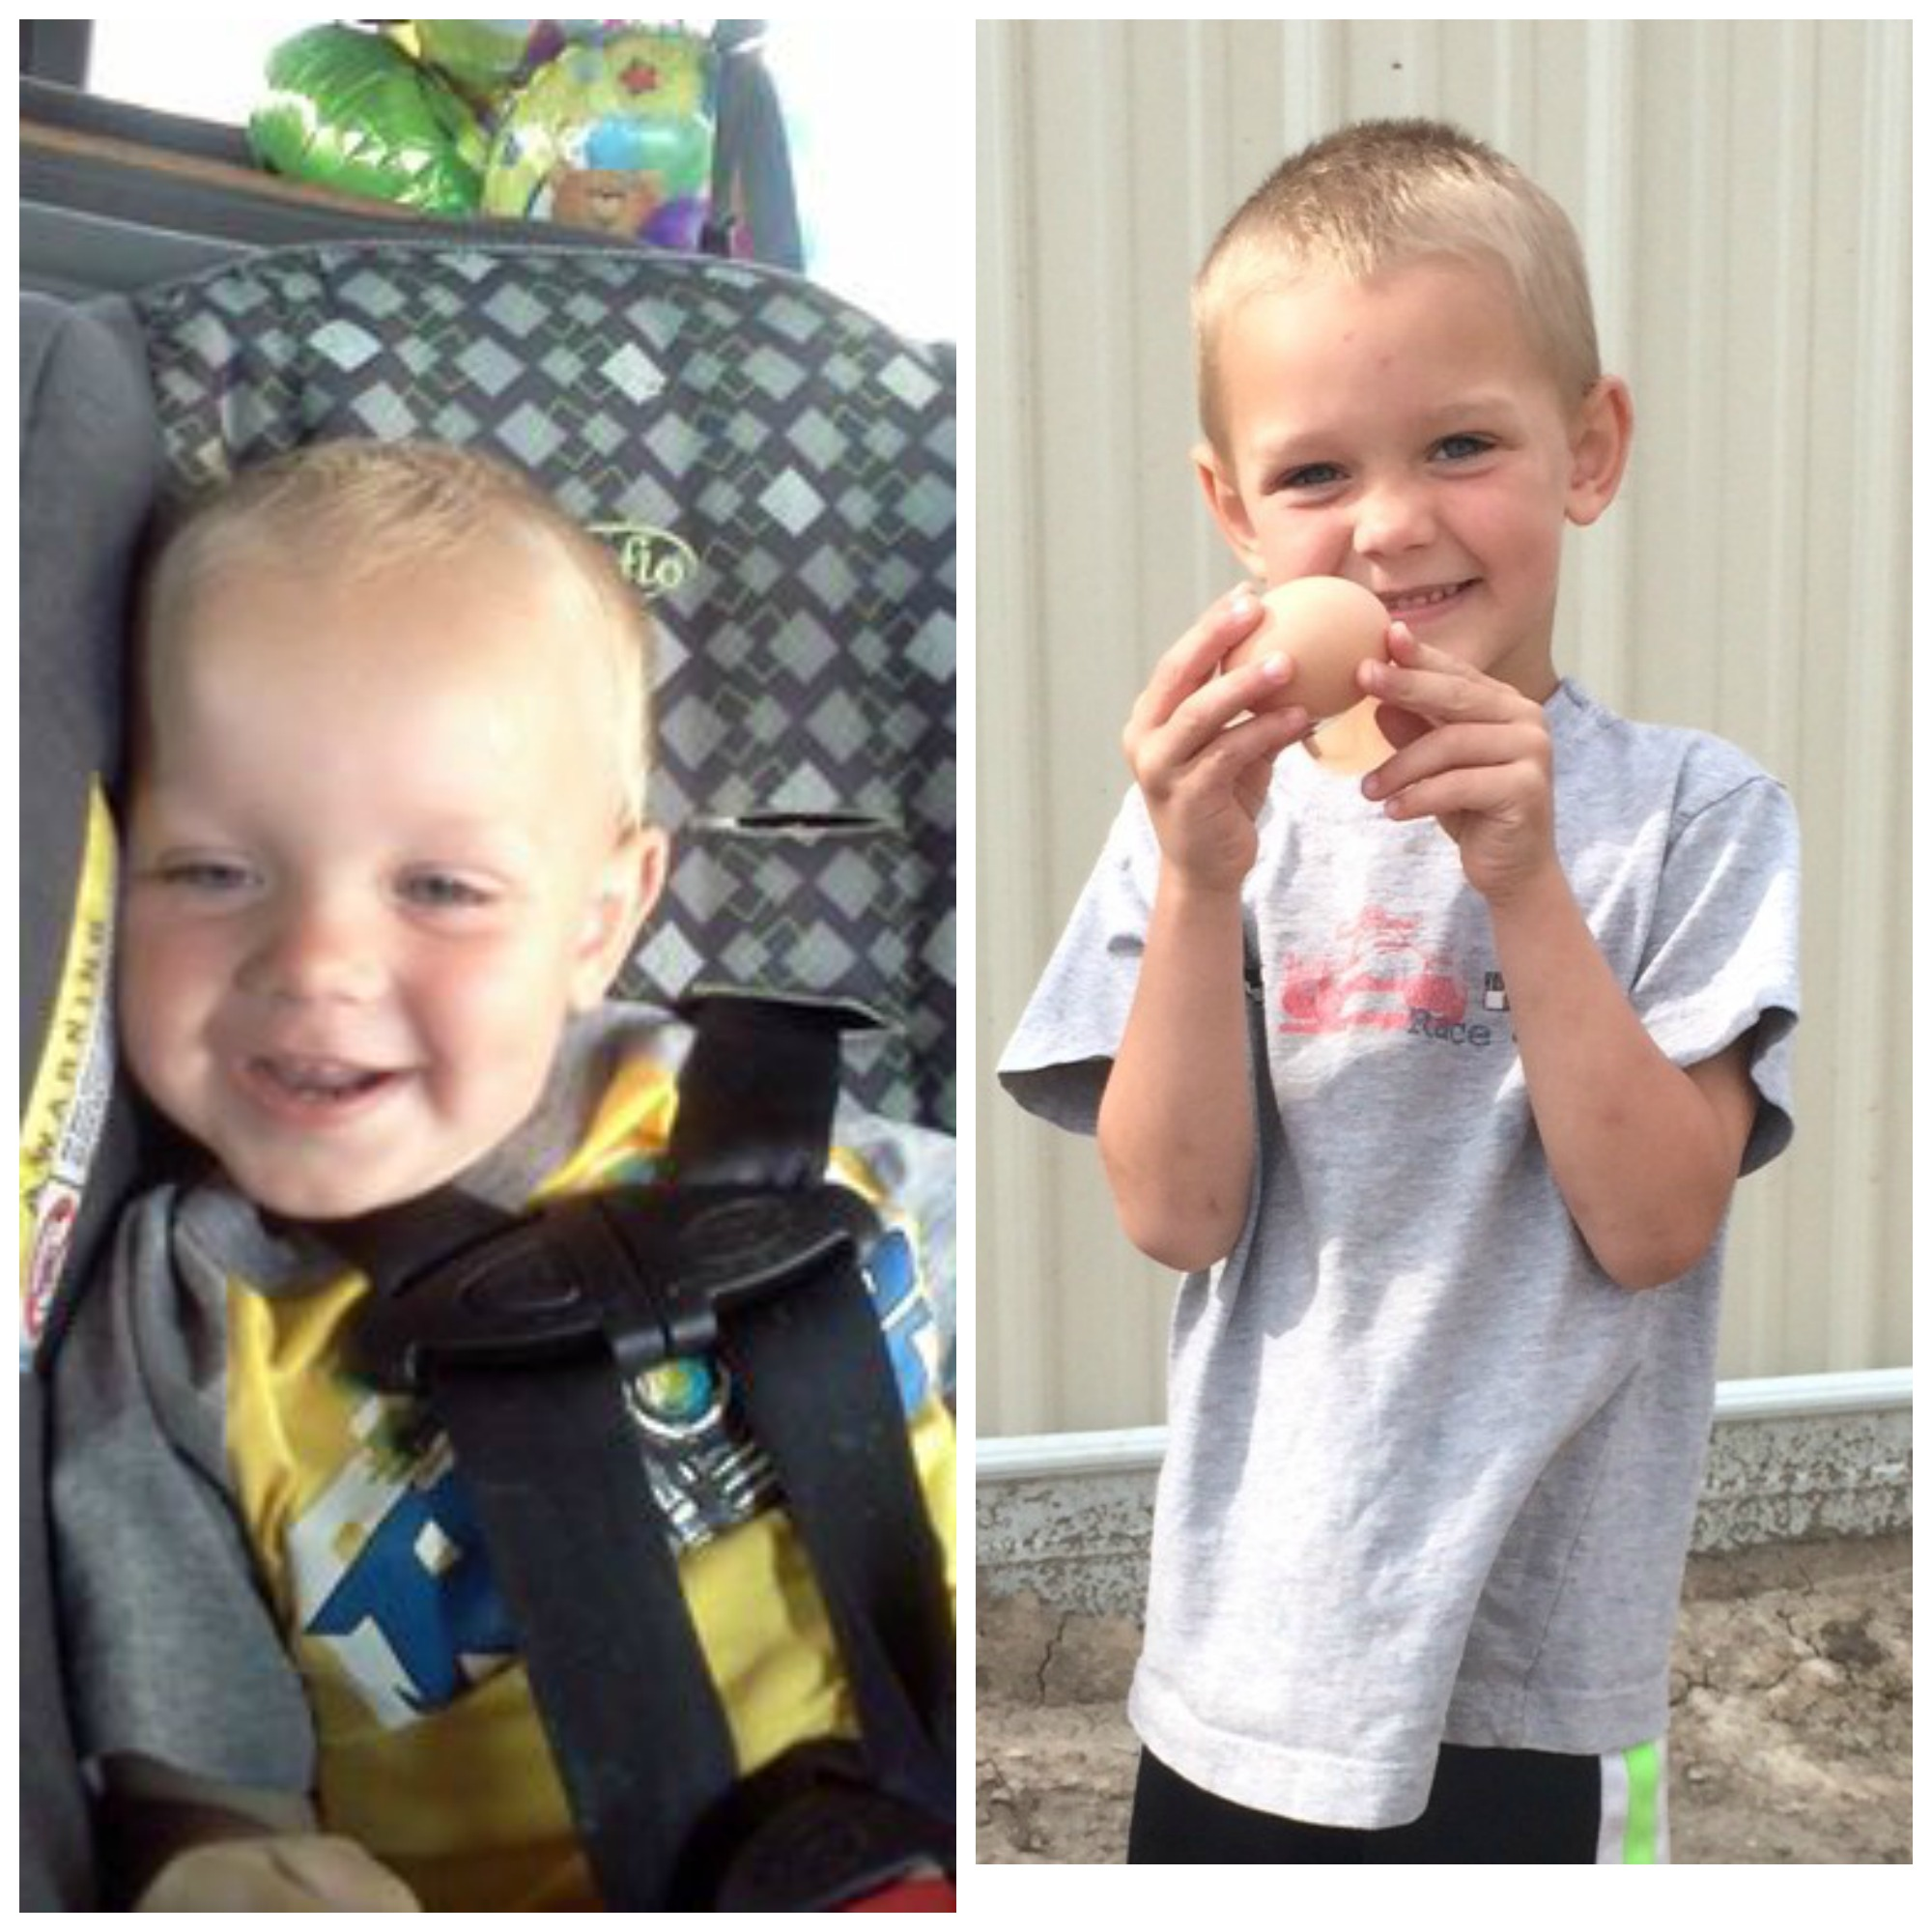 On the left:  Quinton on the way home from the hospital.   On the right: Quinton showing off a chicken egg three years after his seizure.